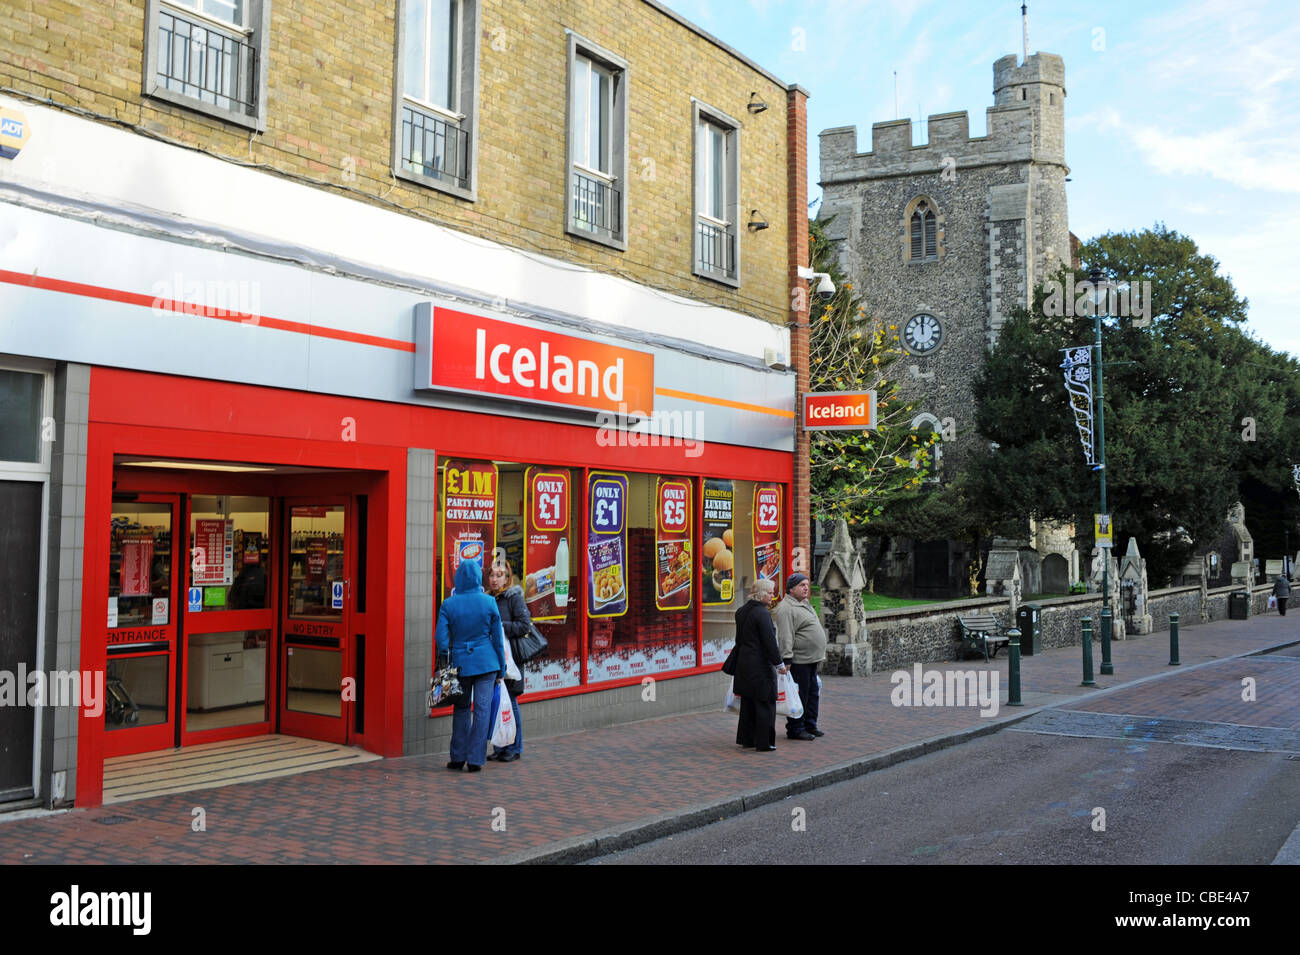 Iceland Frozen Food Shop In Sittingbourne High Street Kent